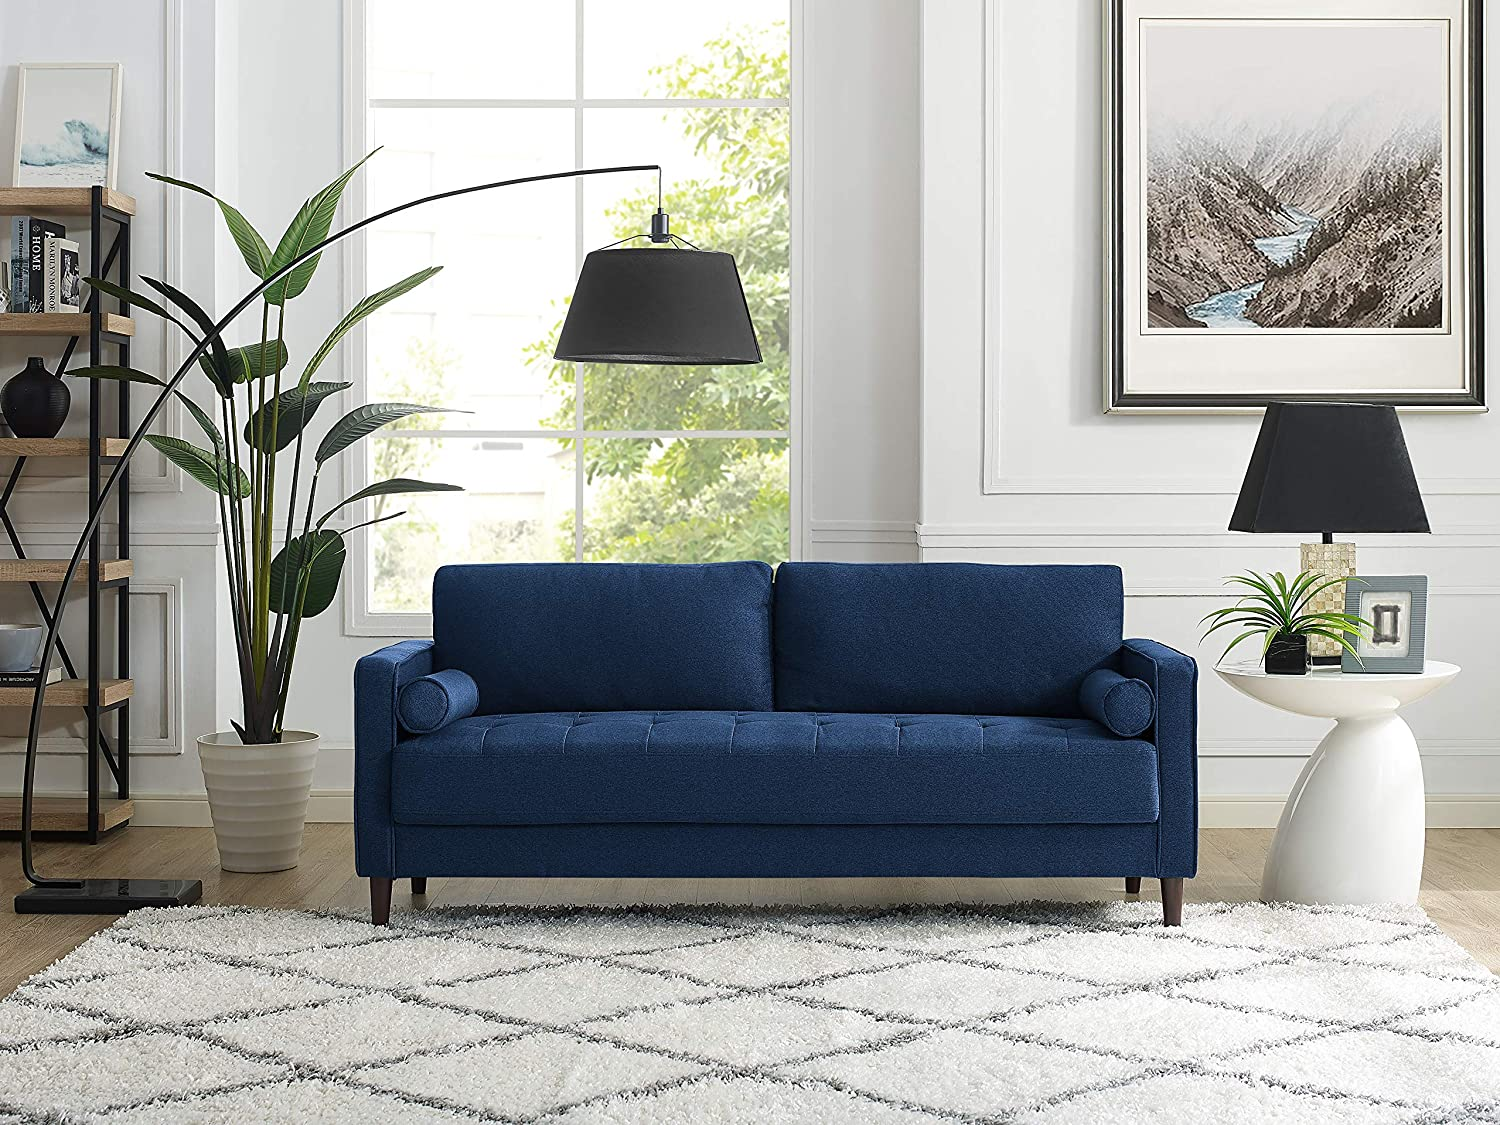 LifeStyle Solutions LK-LGFSP3GU3051 Lexington Sofa in Navy Blue,